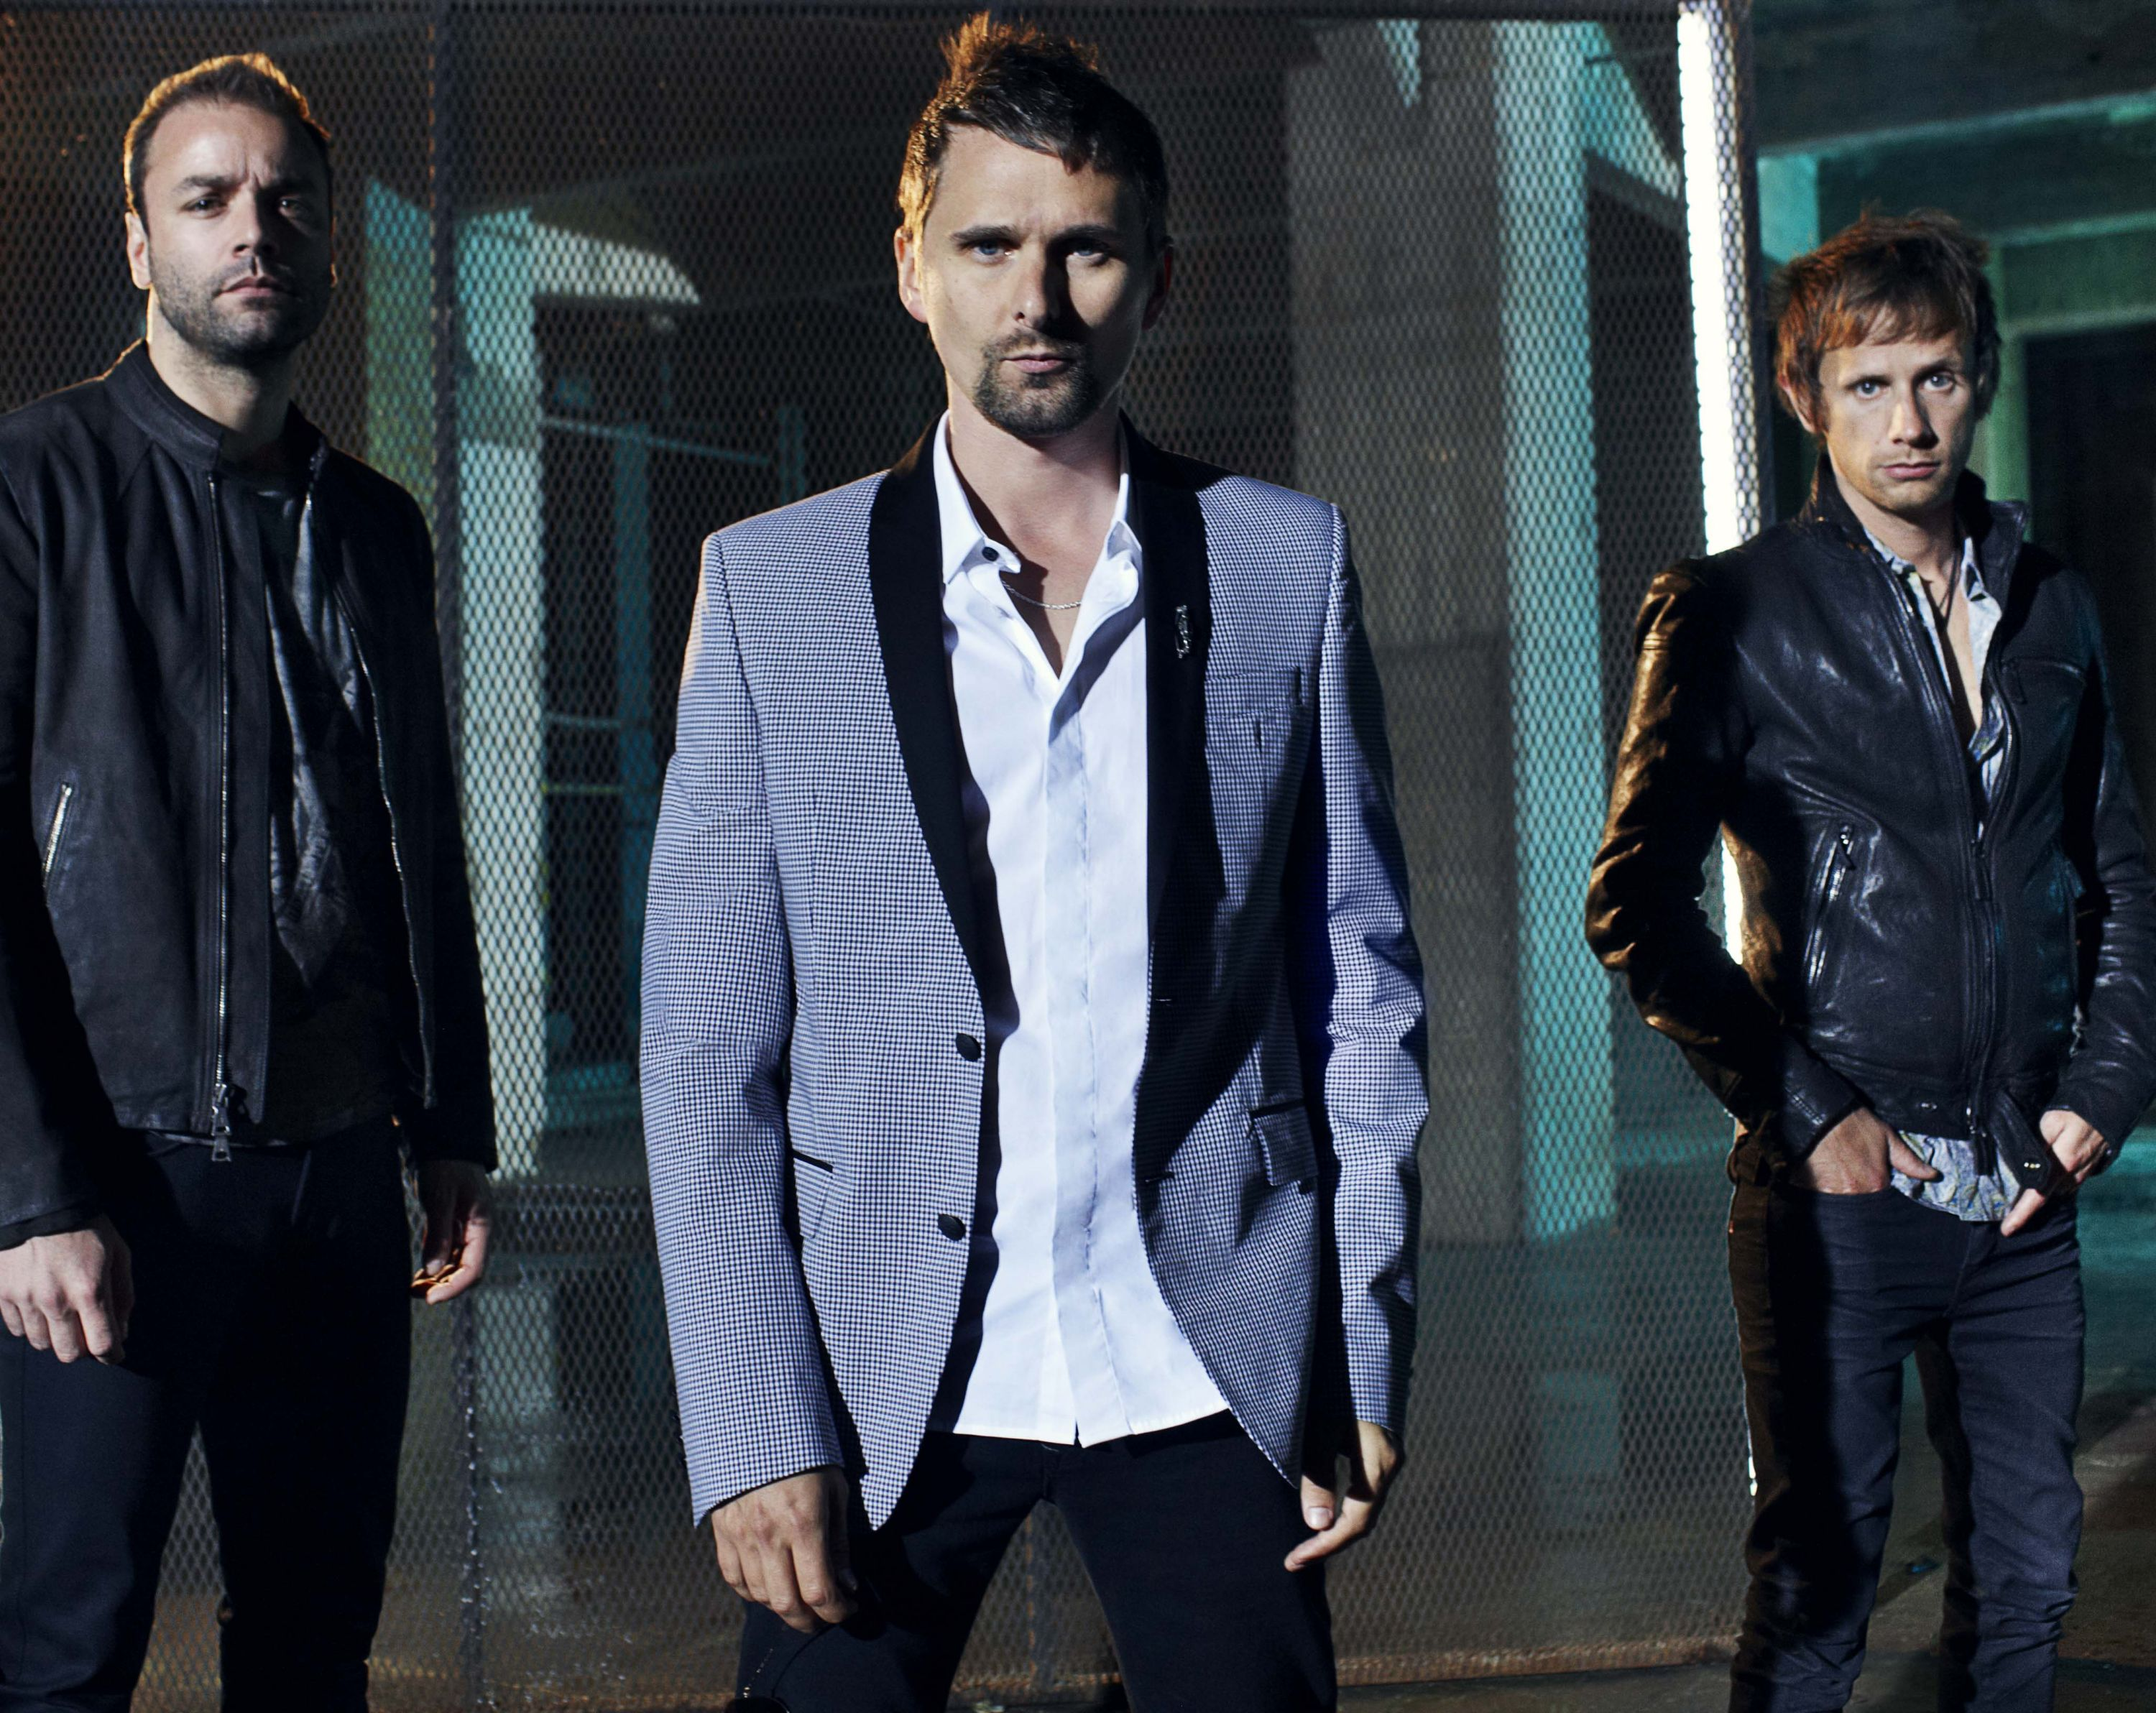 Muse Announced as First Reading and Leeds Headliner